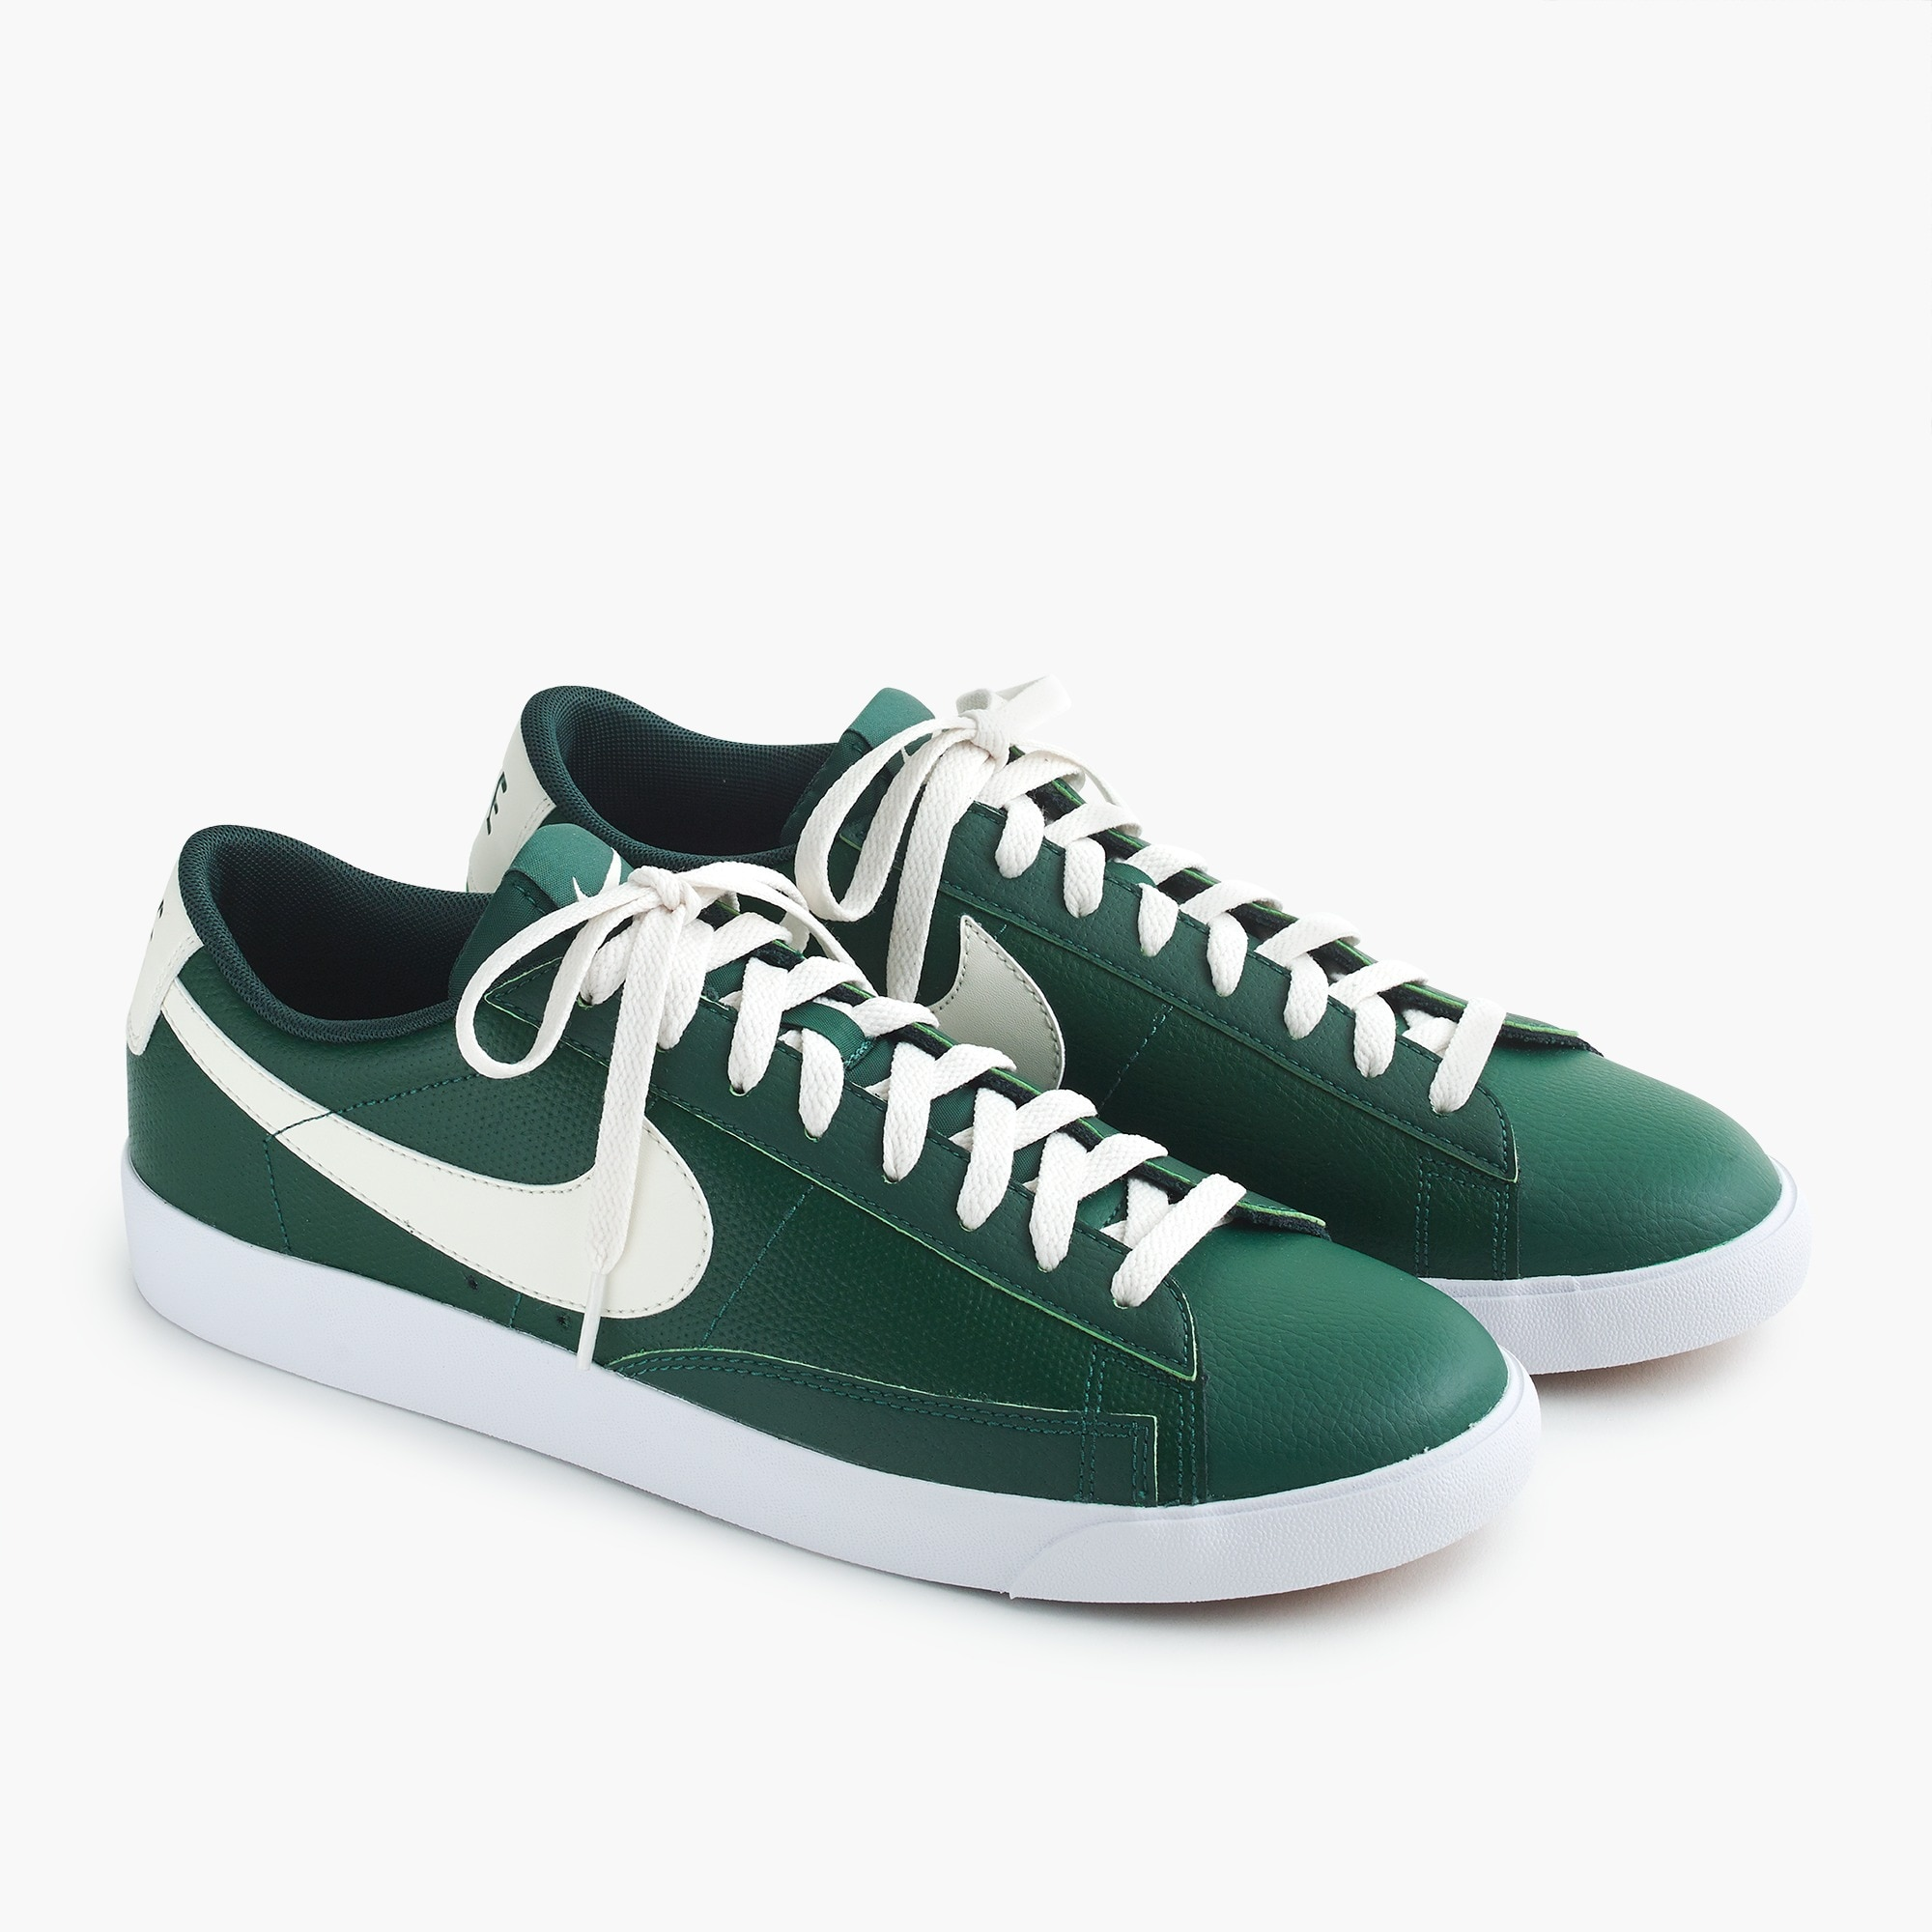 Nike® Blazer sneakers in leather men j.crew in good company c